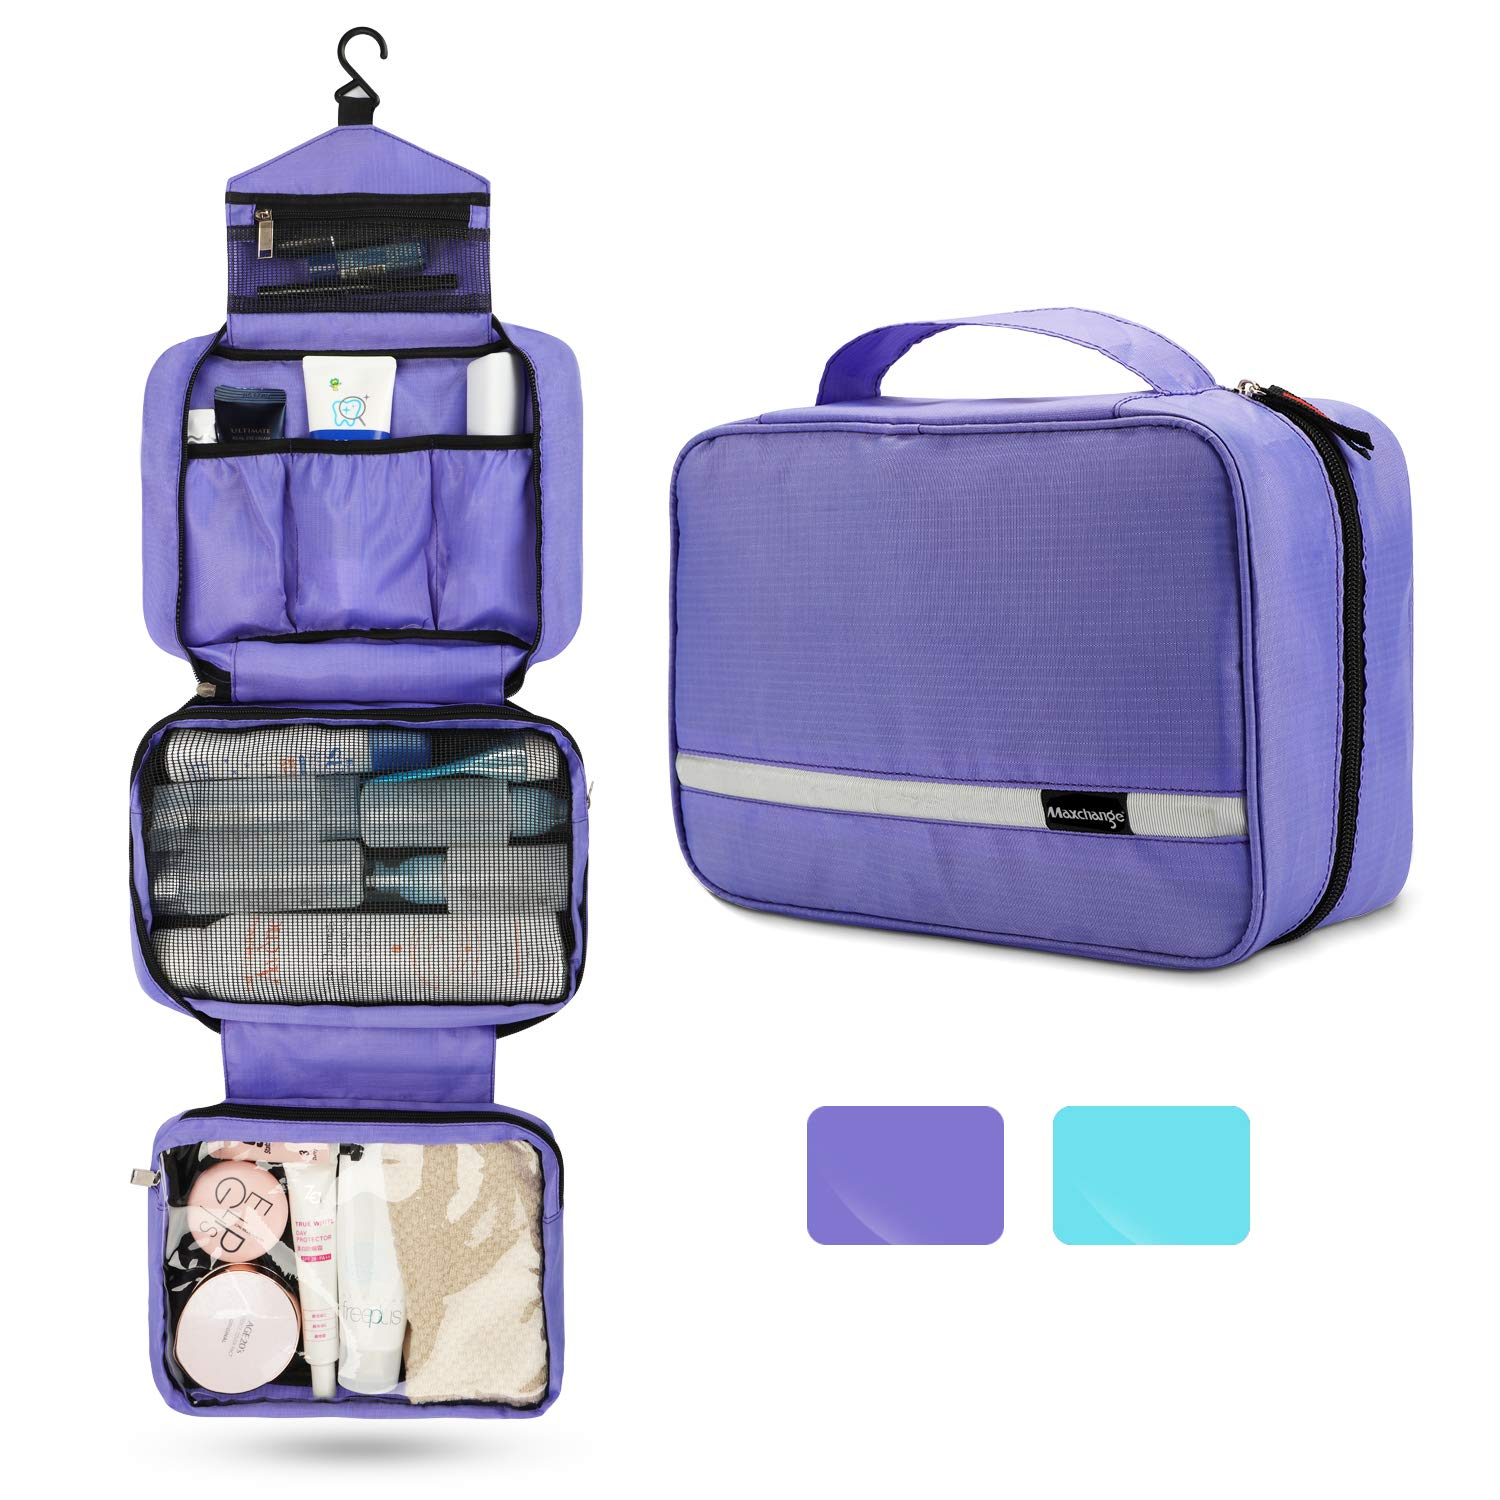 Travel Toiletry Bag for Women, Maxchange Hanging Toiletry Bag with 4 Compartments, Portable and Waterproof Compact travel Bathroom Organizer,Ideal for Travel or Daily Life.(Purple) by Maxchange